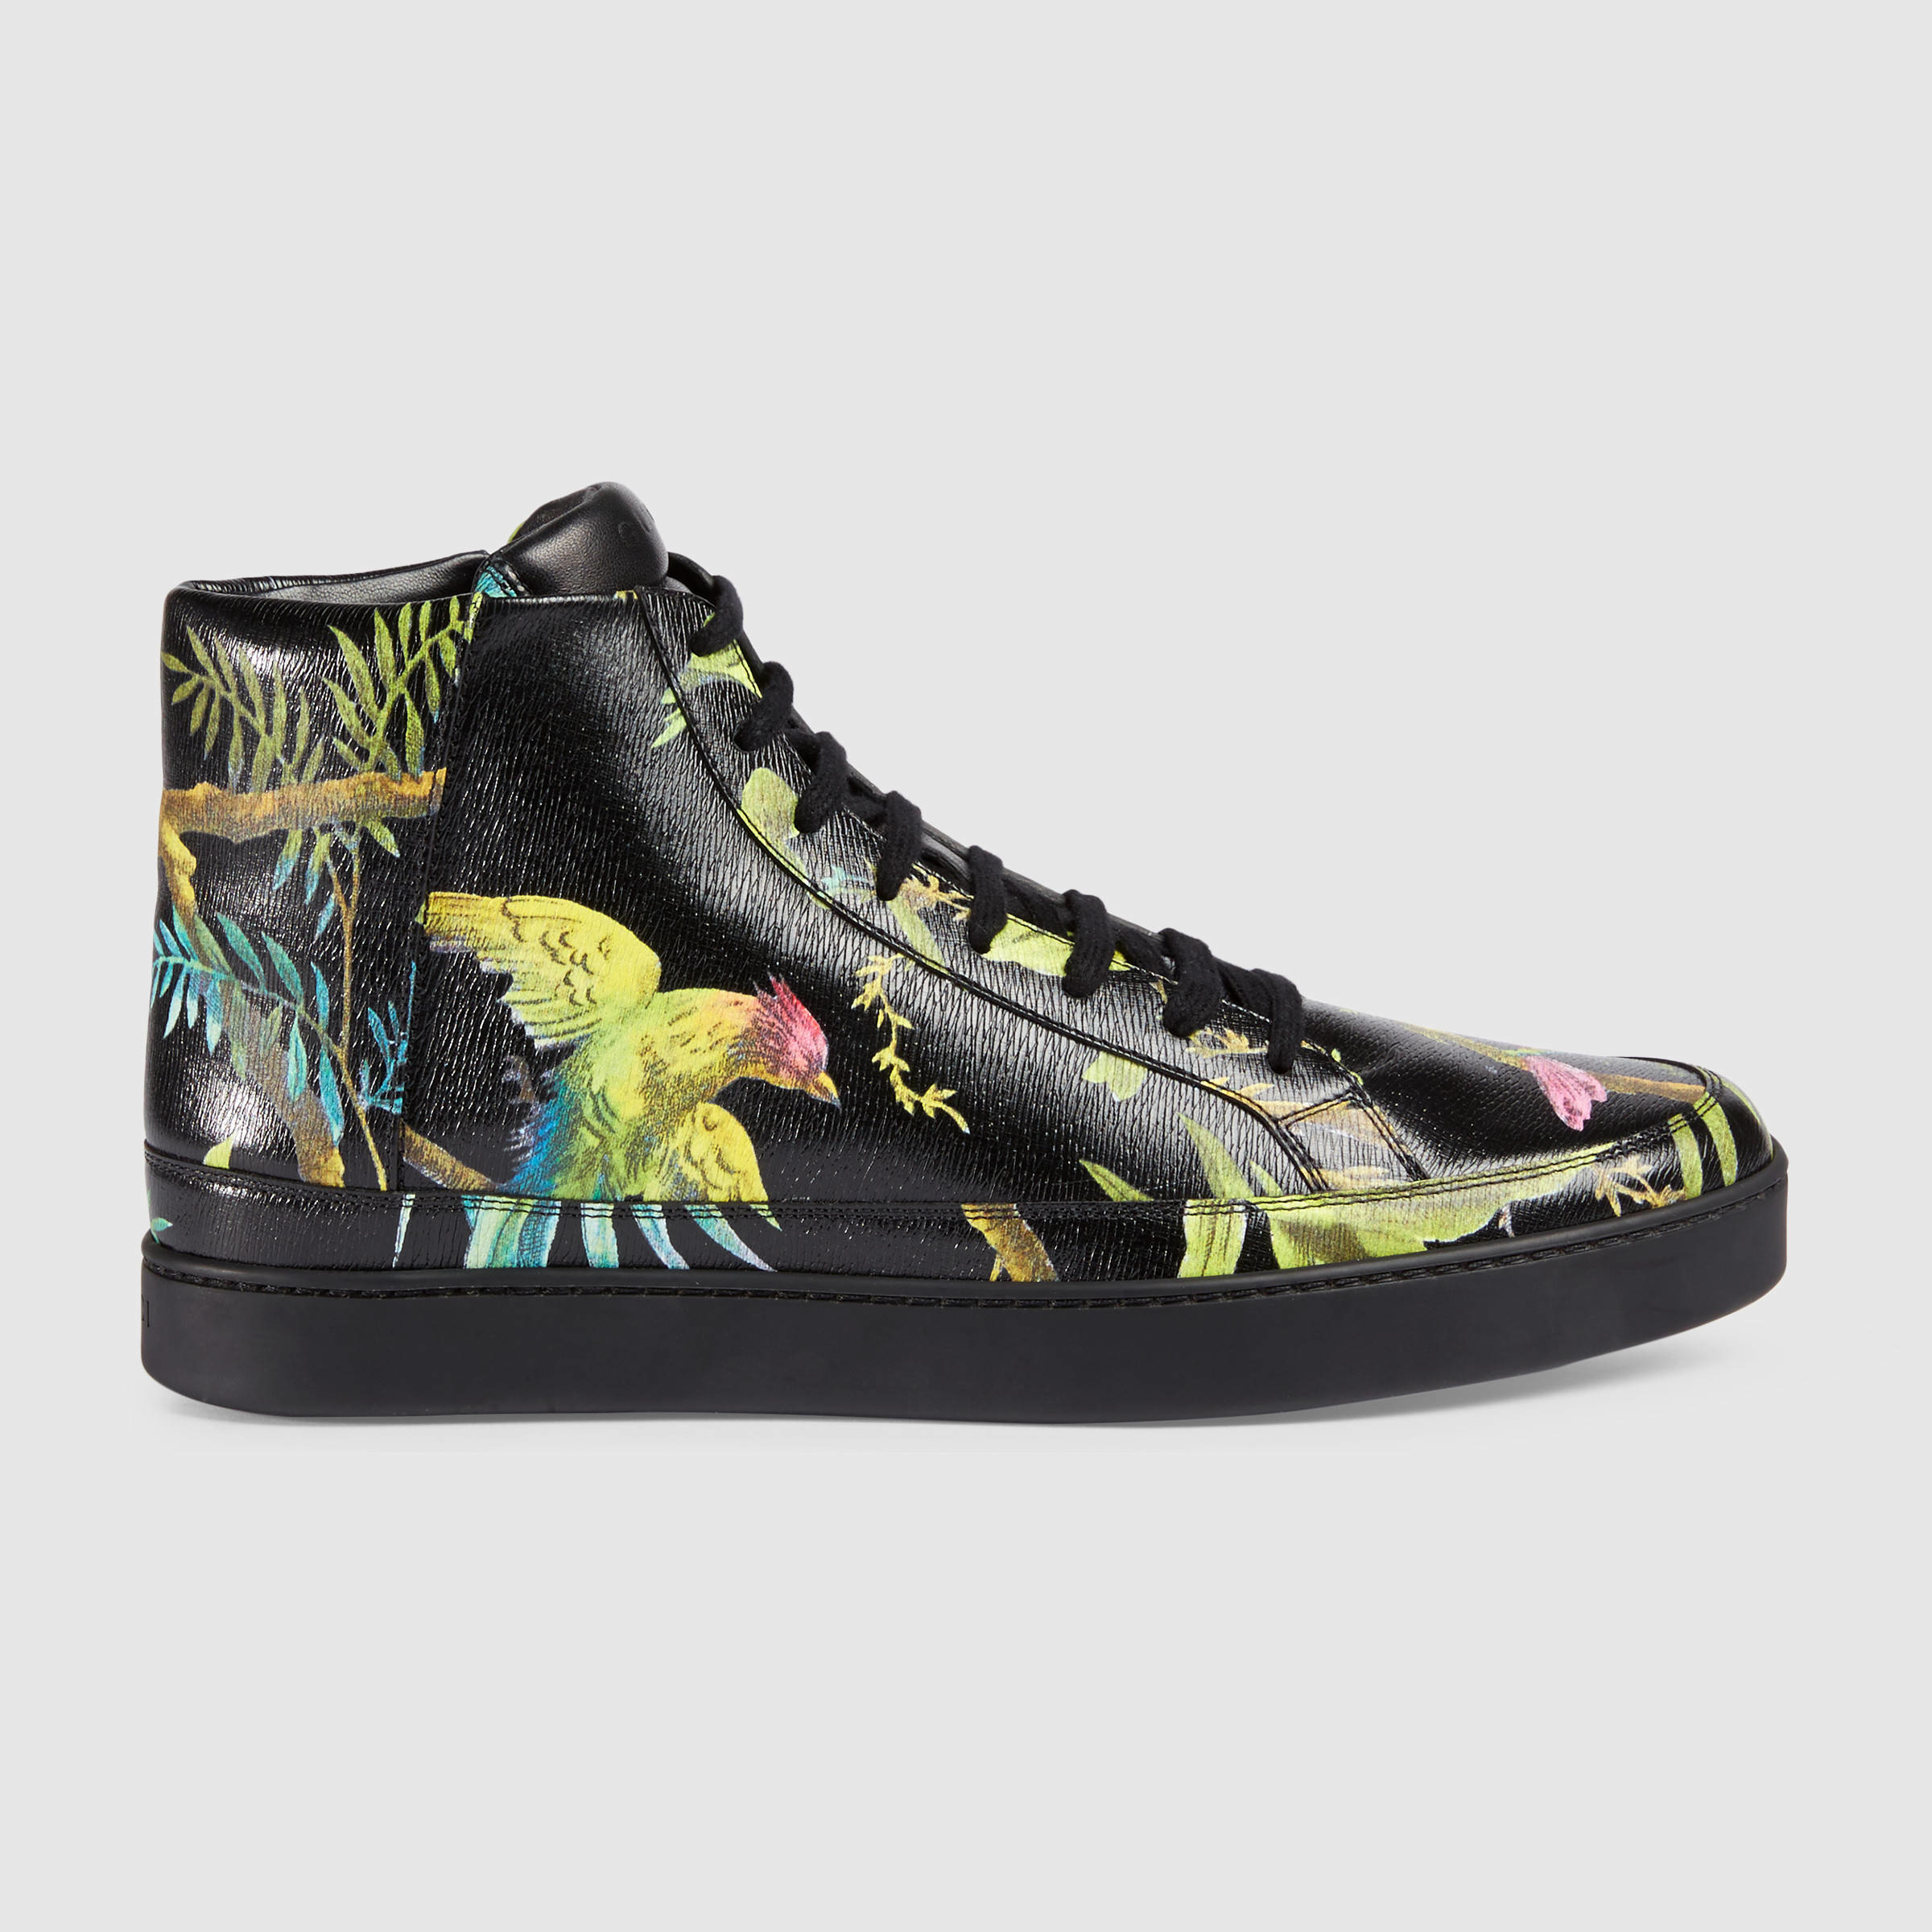 cffe2d62b40 Gucci Tropical Print High-top Sneaker in Black - Lyst